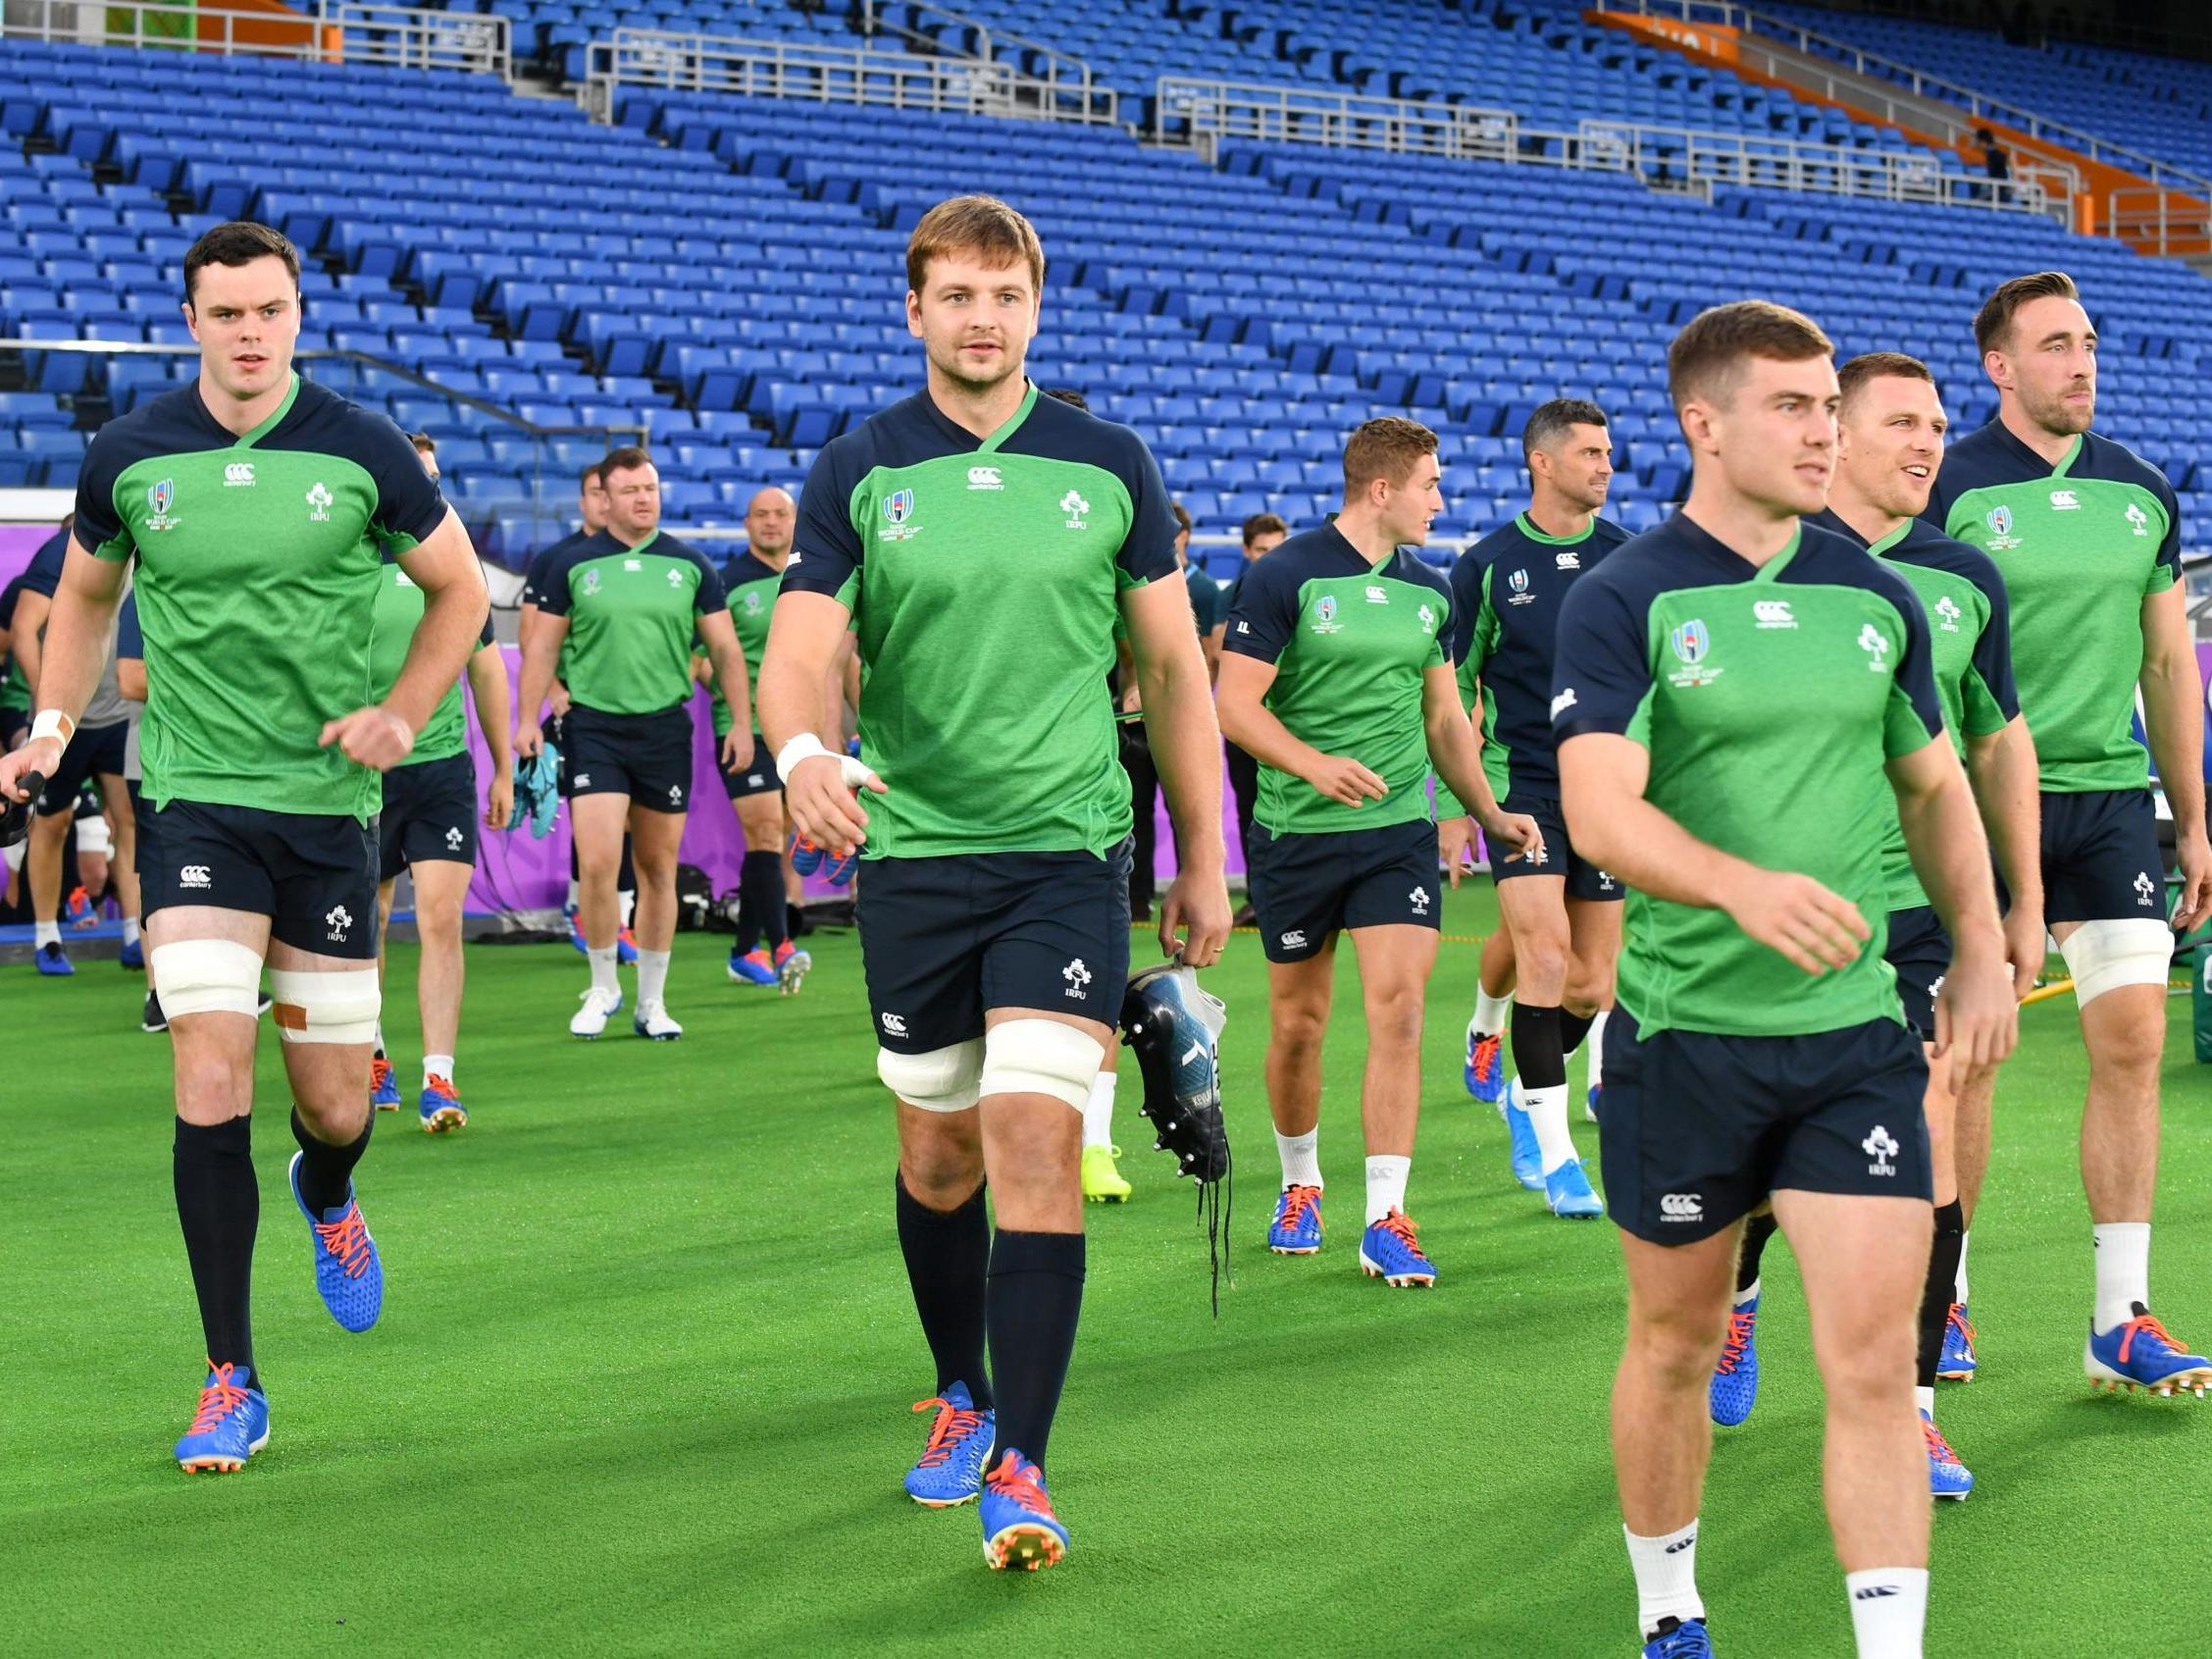 Rugby World Cup 2019: How to live stream Ireland vs Scotland, kick-off time and team news